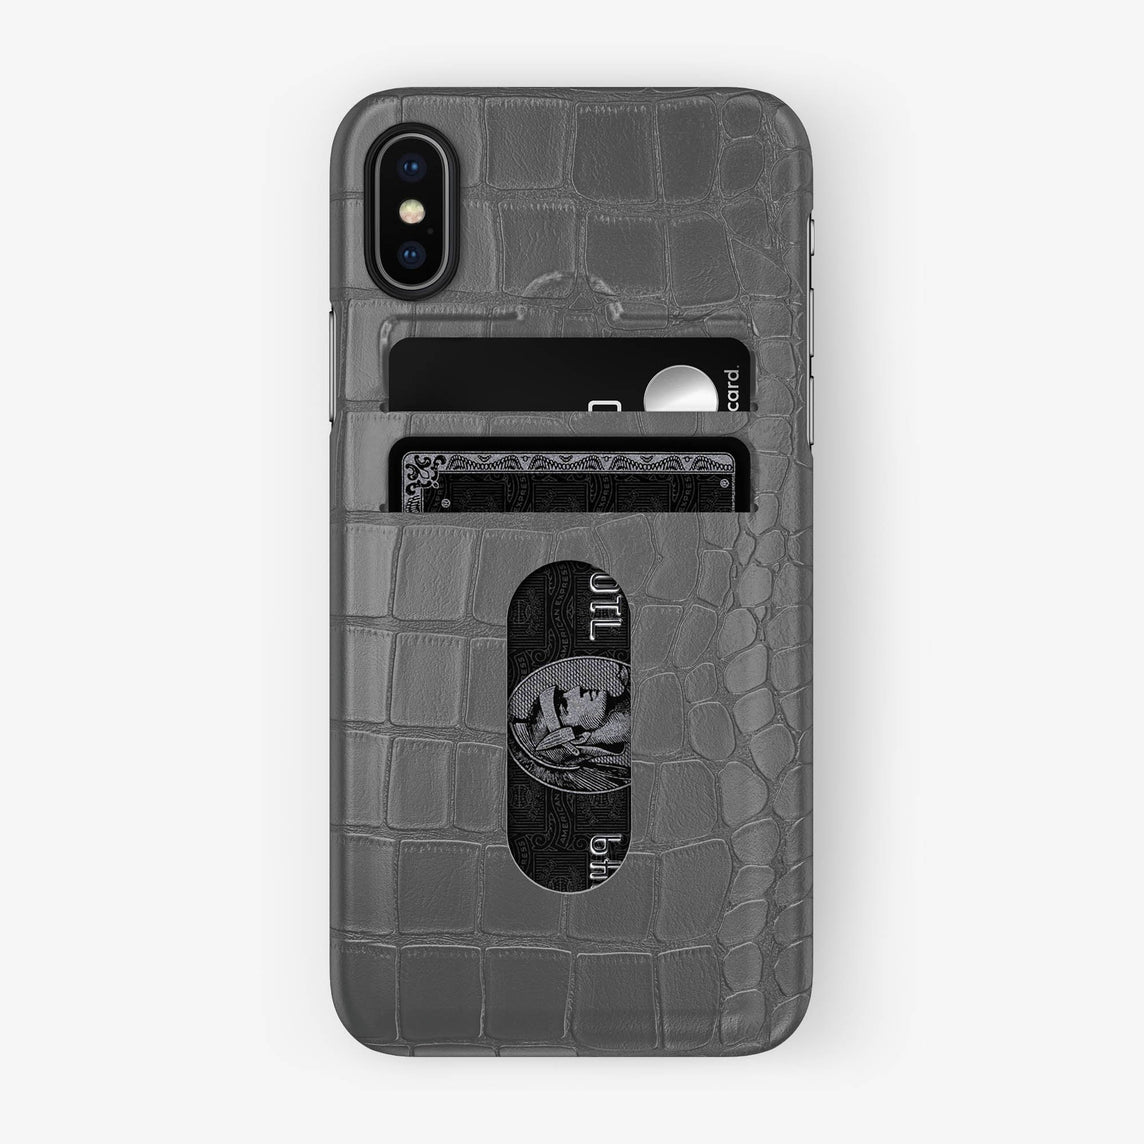 Alligator Card Holder Case iPhone X/Xs | Grey - Black - Hadoro